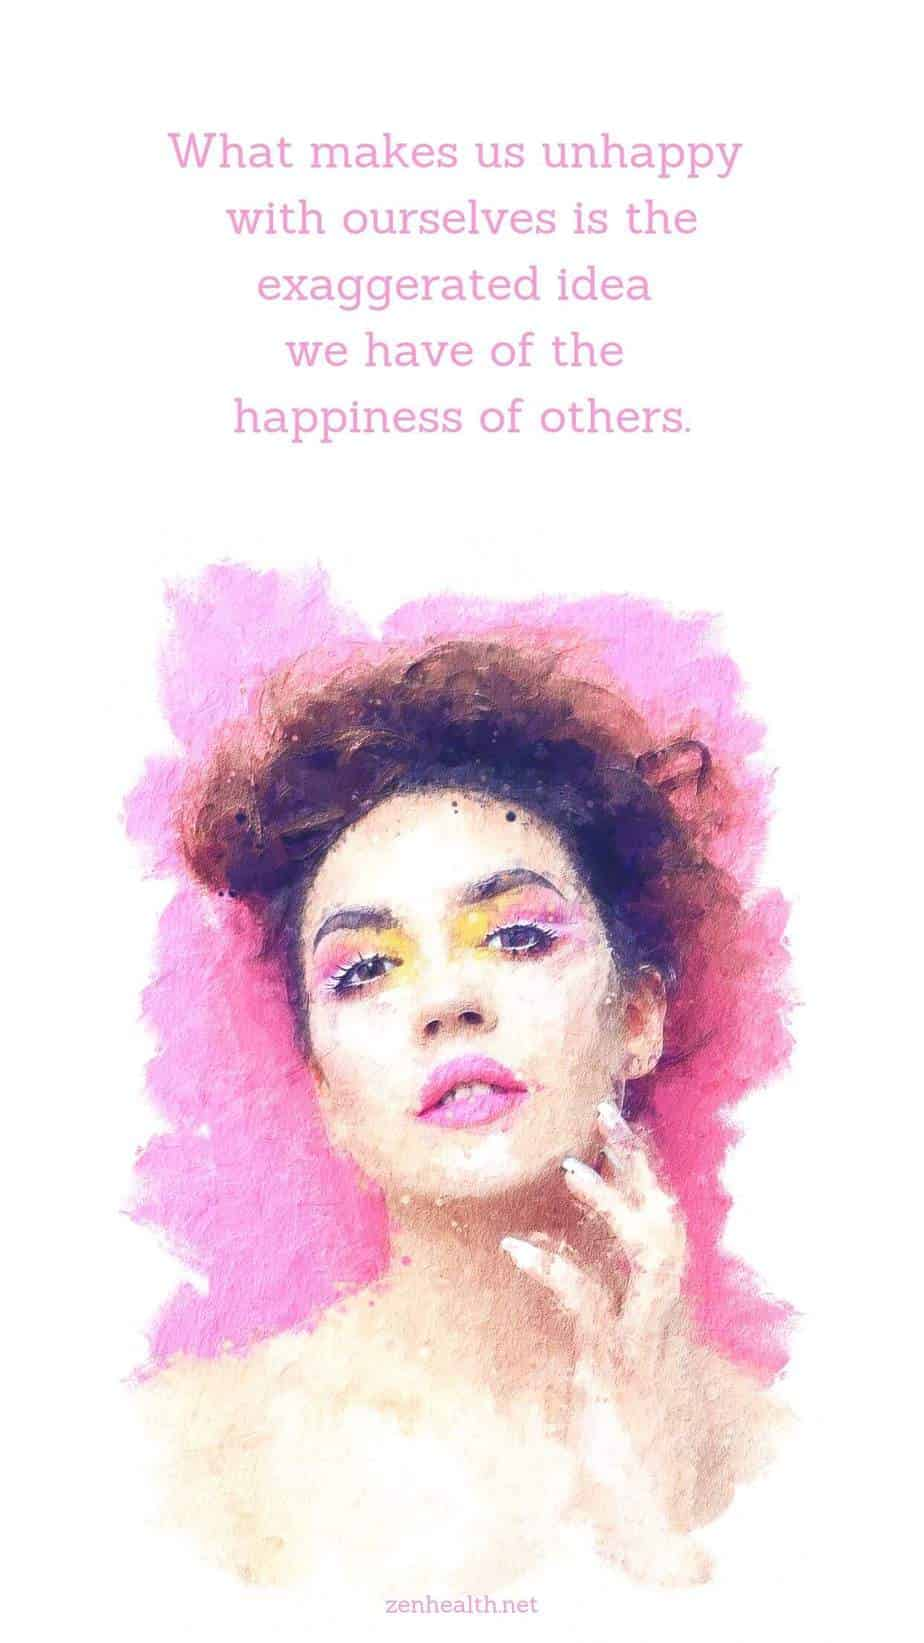 What makes us unhappy with ourselves is the exaggerated idea we have of the happiness of others.